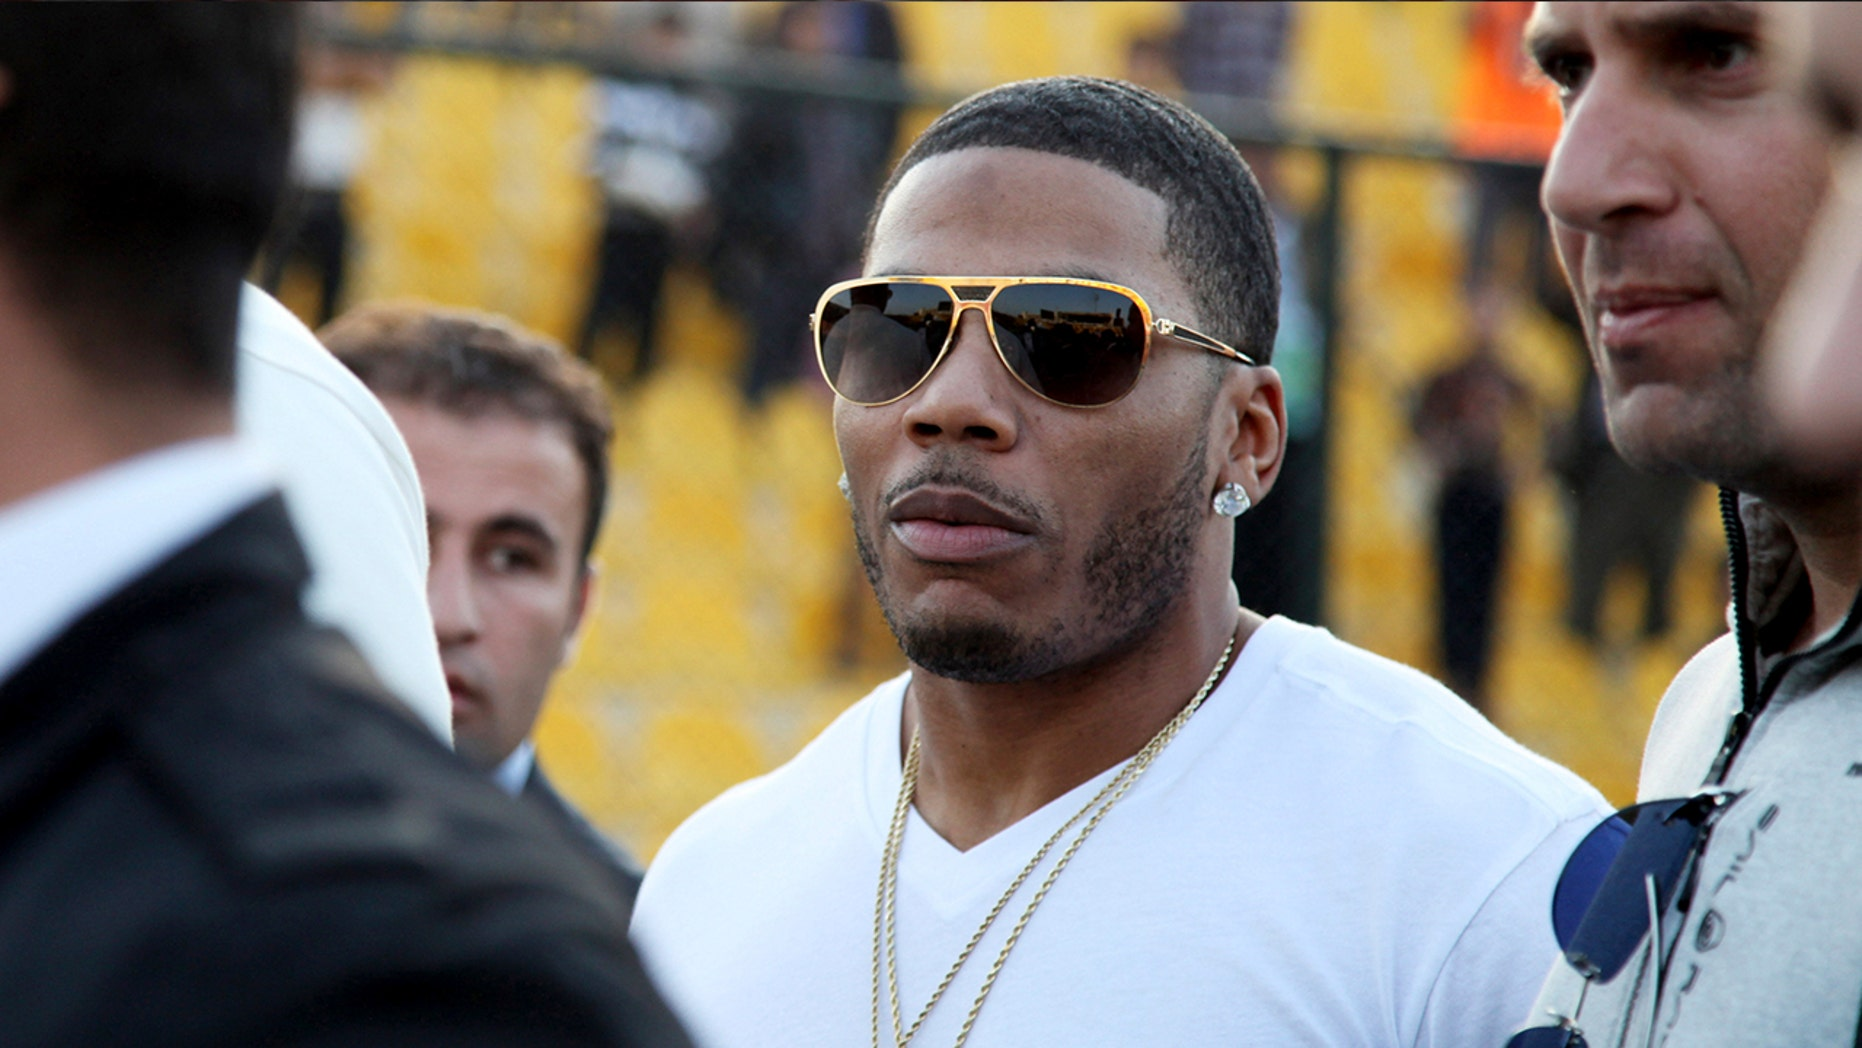 A woman who alleges the rapper Nelly raped her on his tour bus after a performance in Seattle says he sexually assaulted two other women in England.